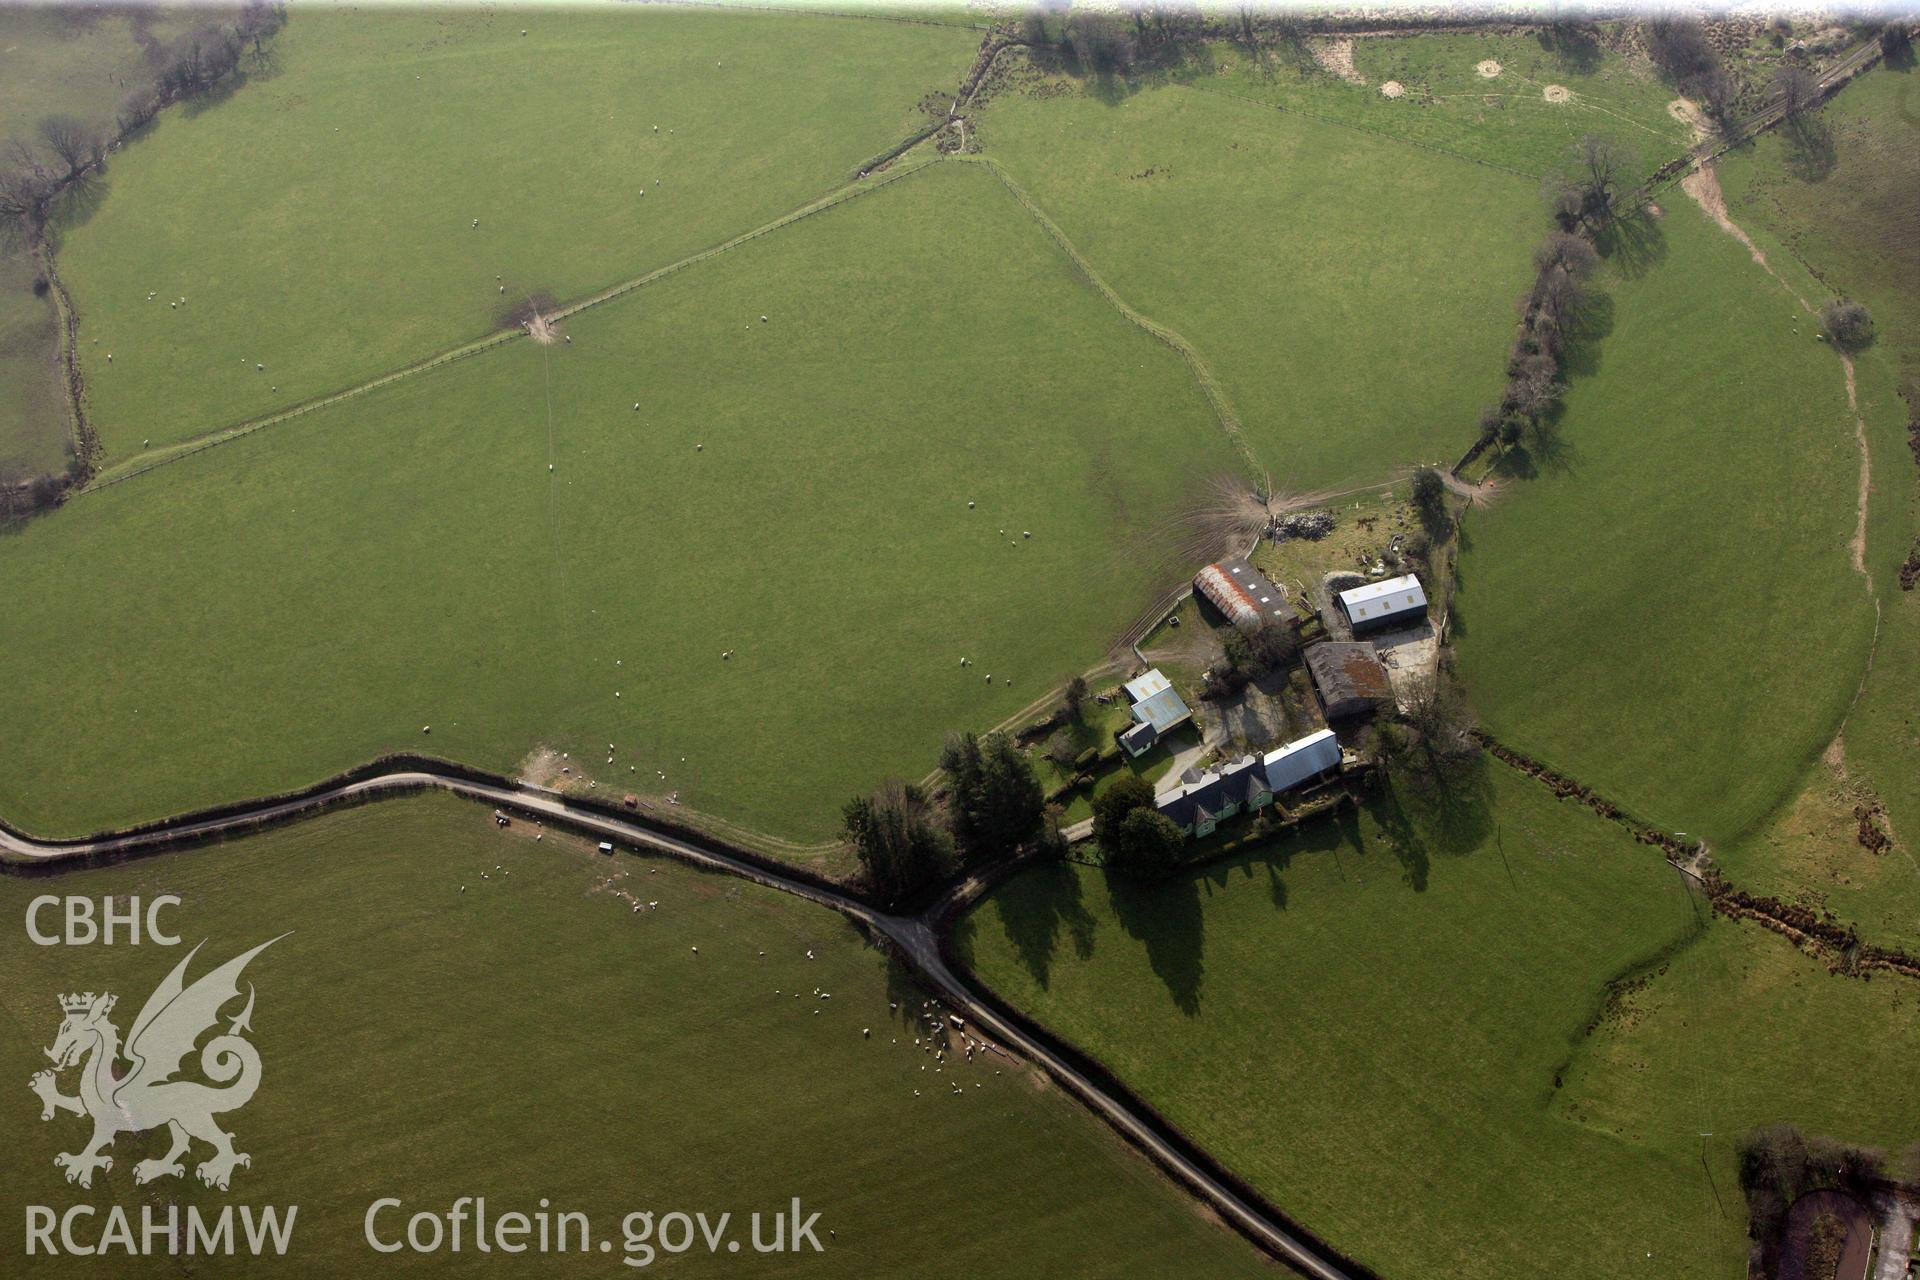 RCAHMW colour oblique photograph of Cefn Caer Roman Fort. Taken by Toby Driver on 25/03/2011.